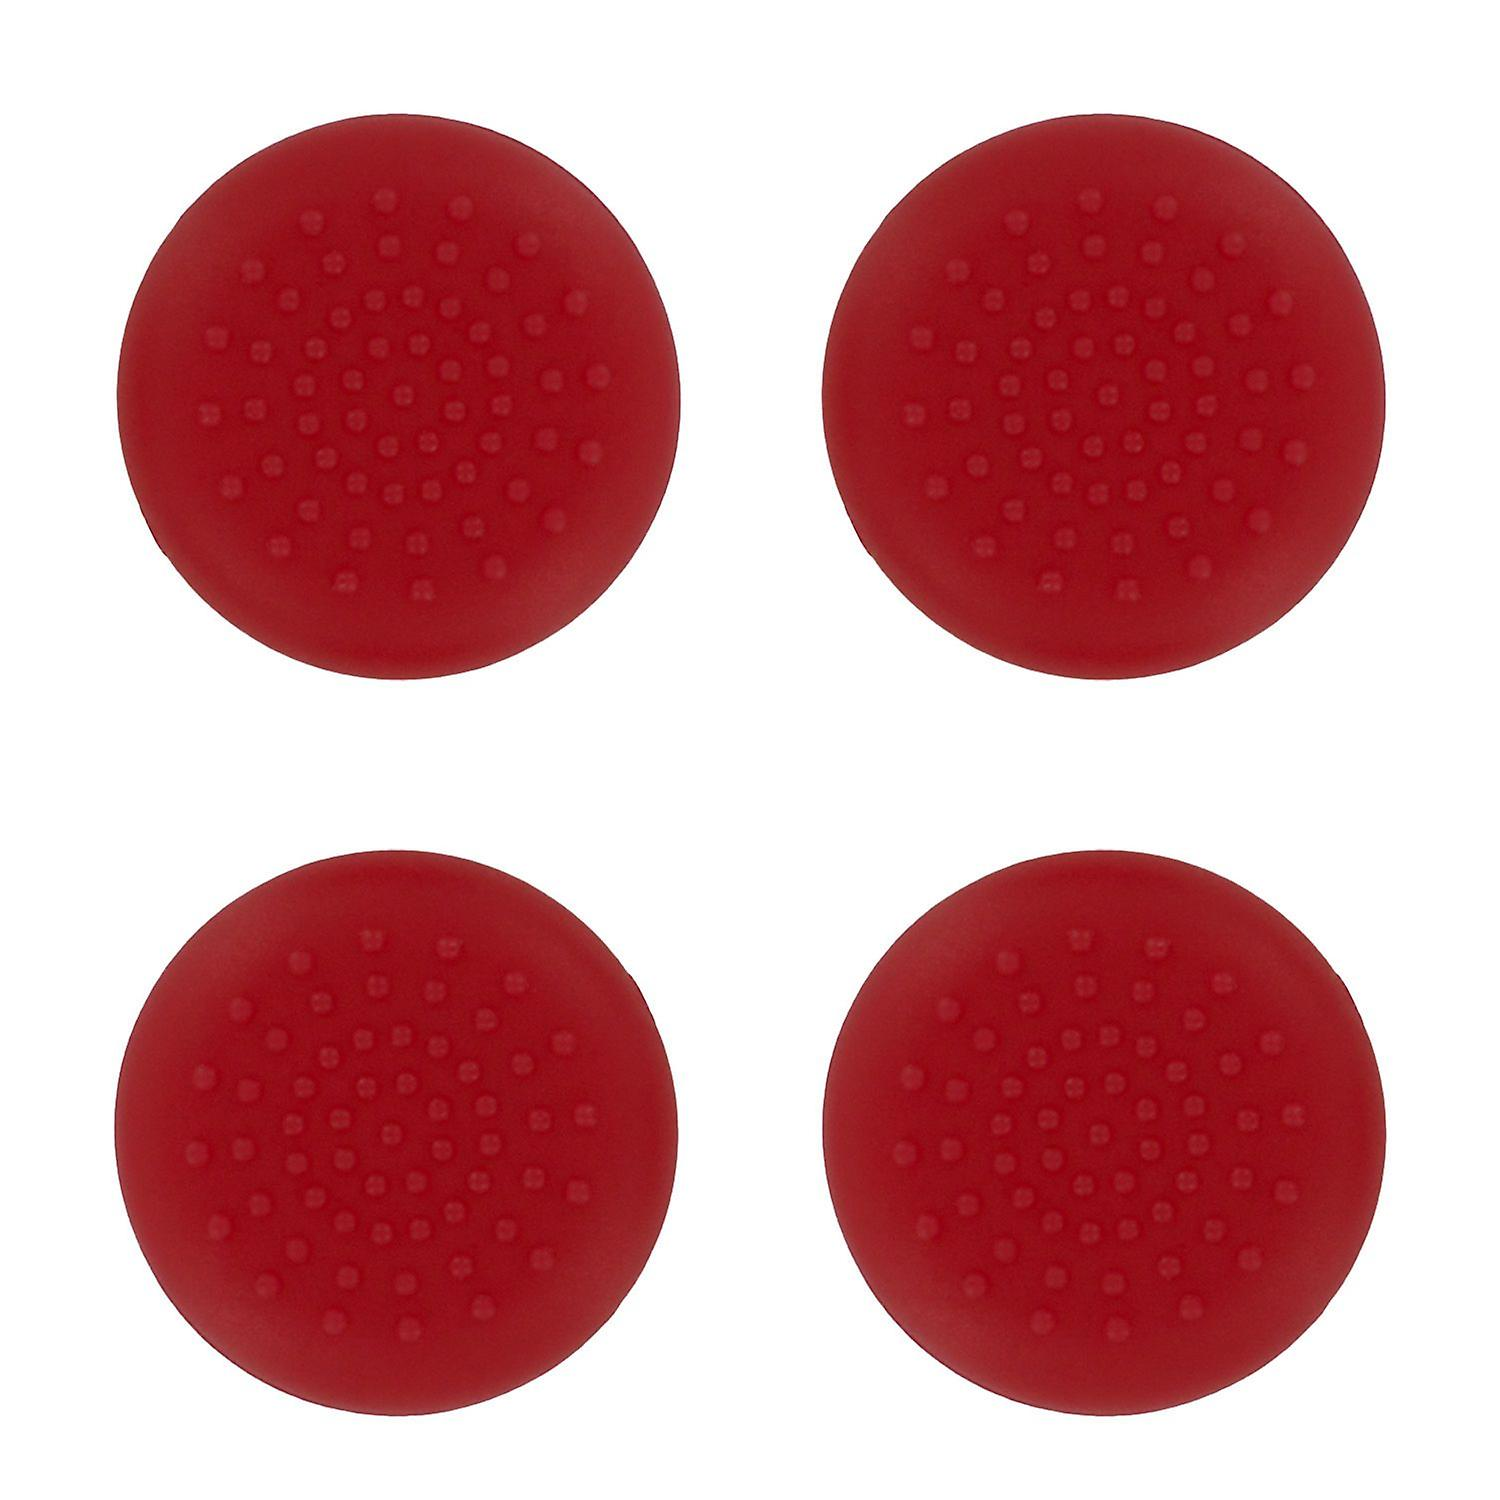 Tpu analogue thumb grip stick concave covers caps for xbox 360 - 4 pack red